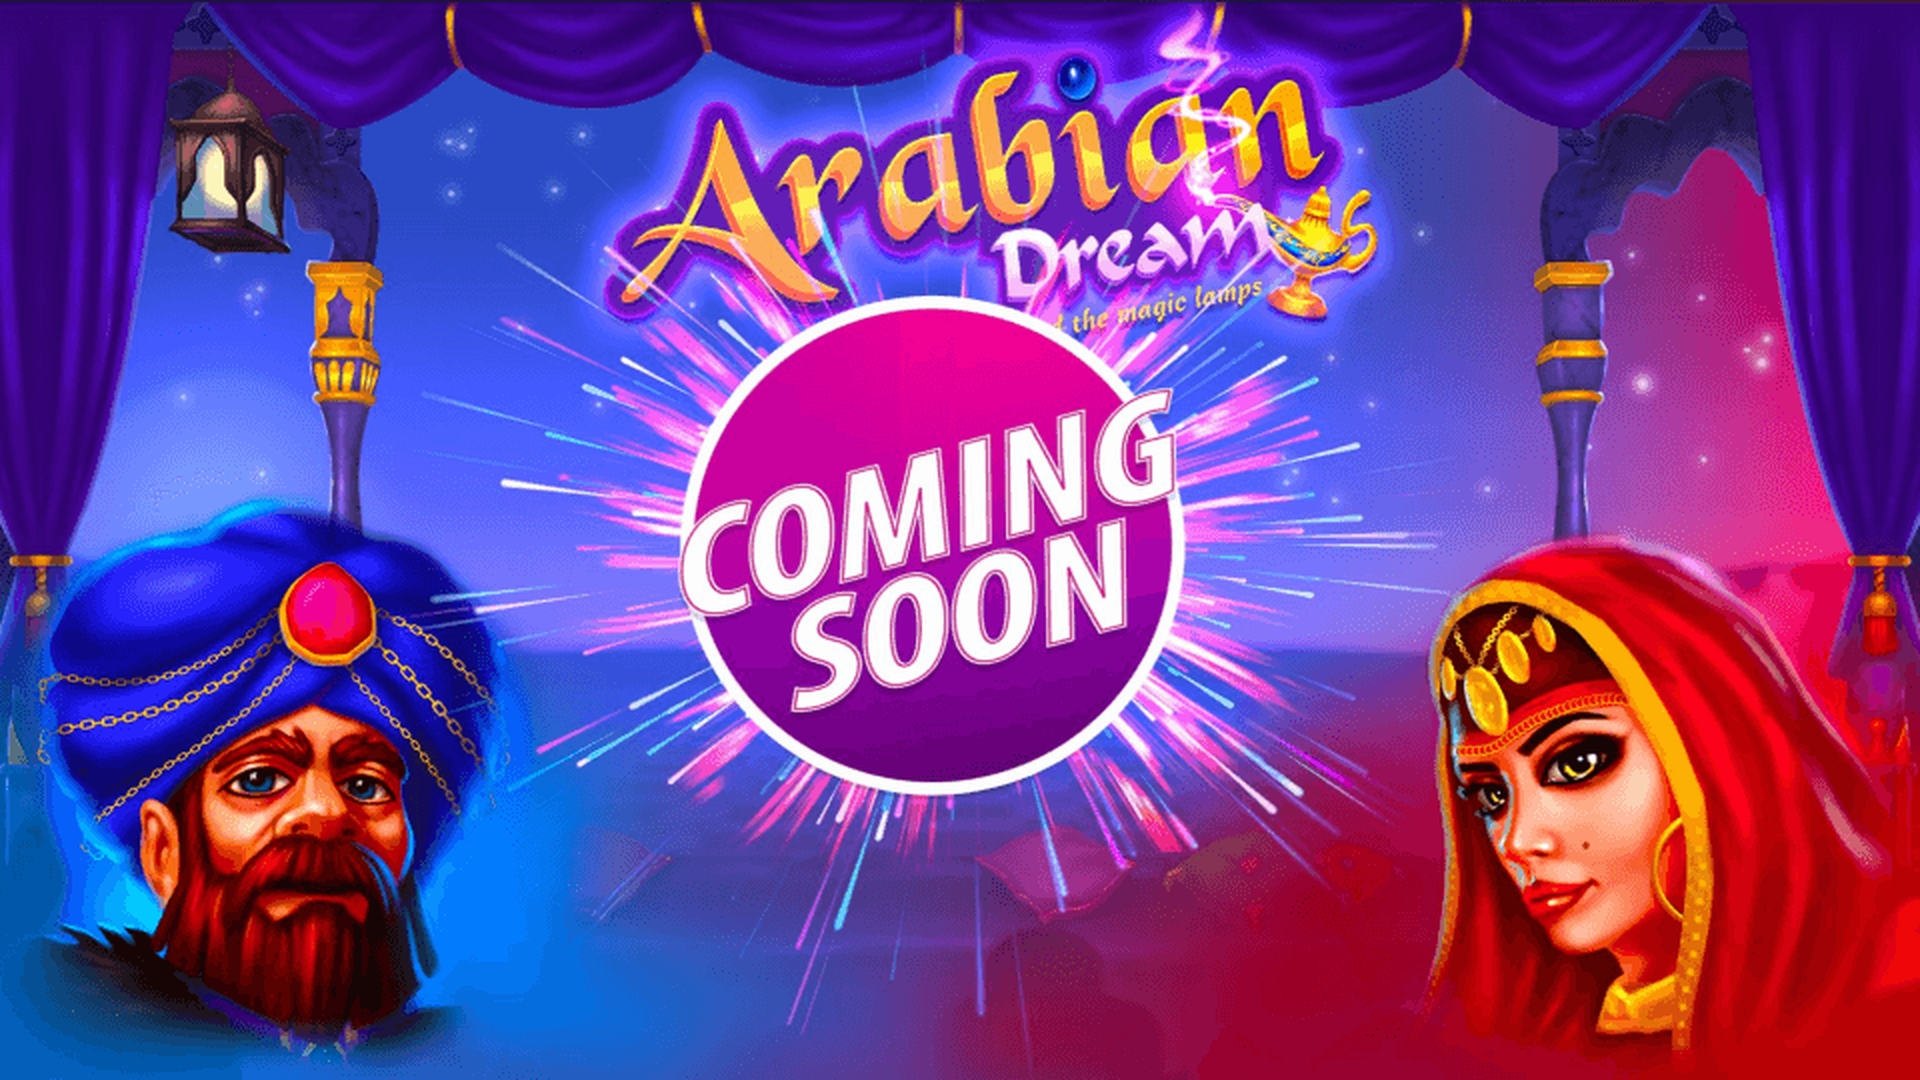 The Arabian Dream Online Slot Demo Game by ZEUS PLAY